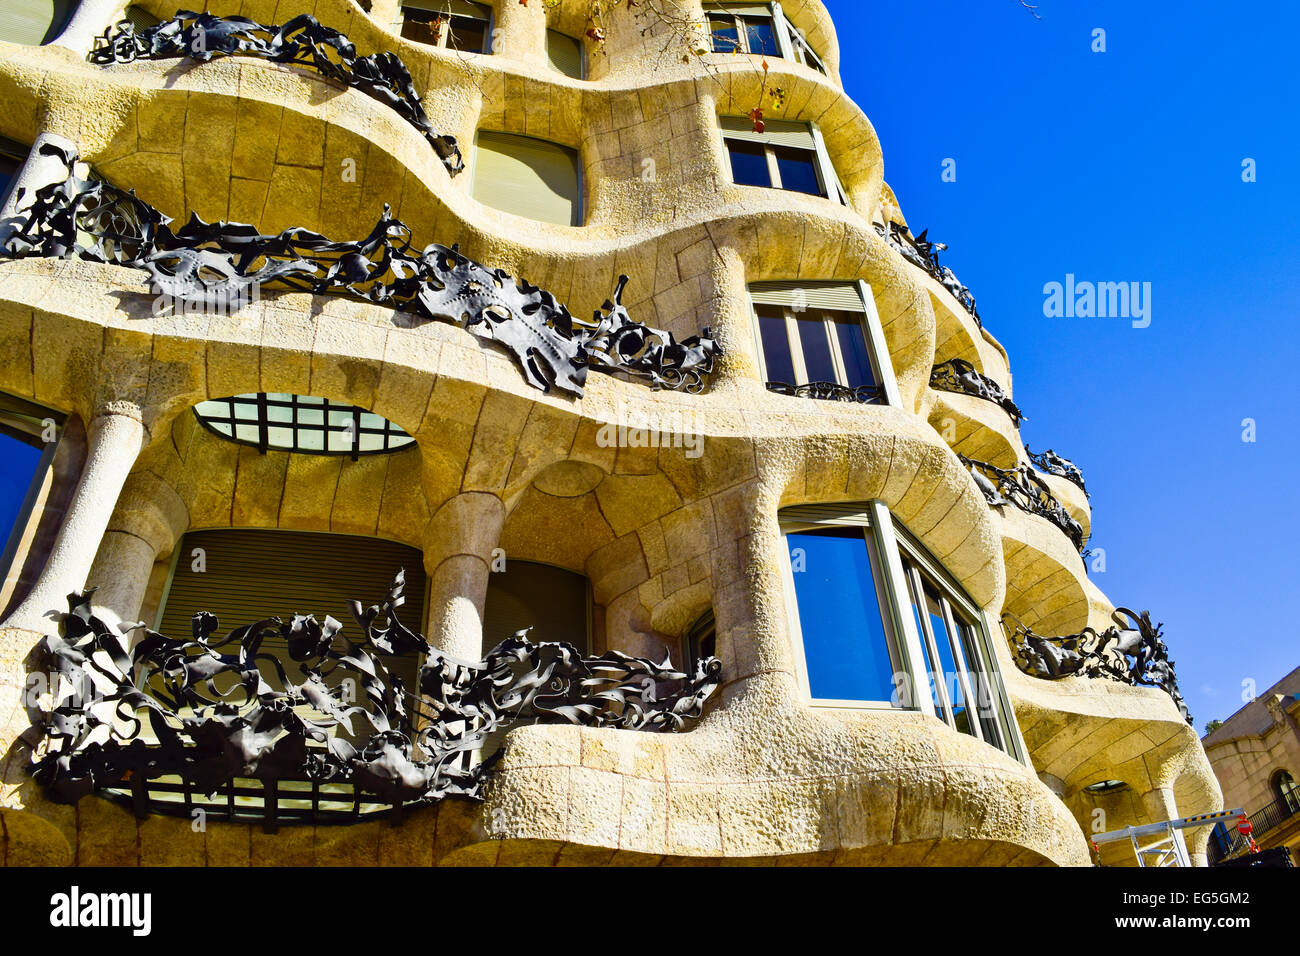 Casa Mila aka La Pedrera designed by Antoni Gaudi architect. Barcelona, Catalonia, Spain. - Stock Image